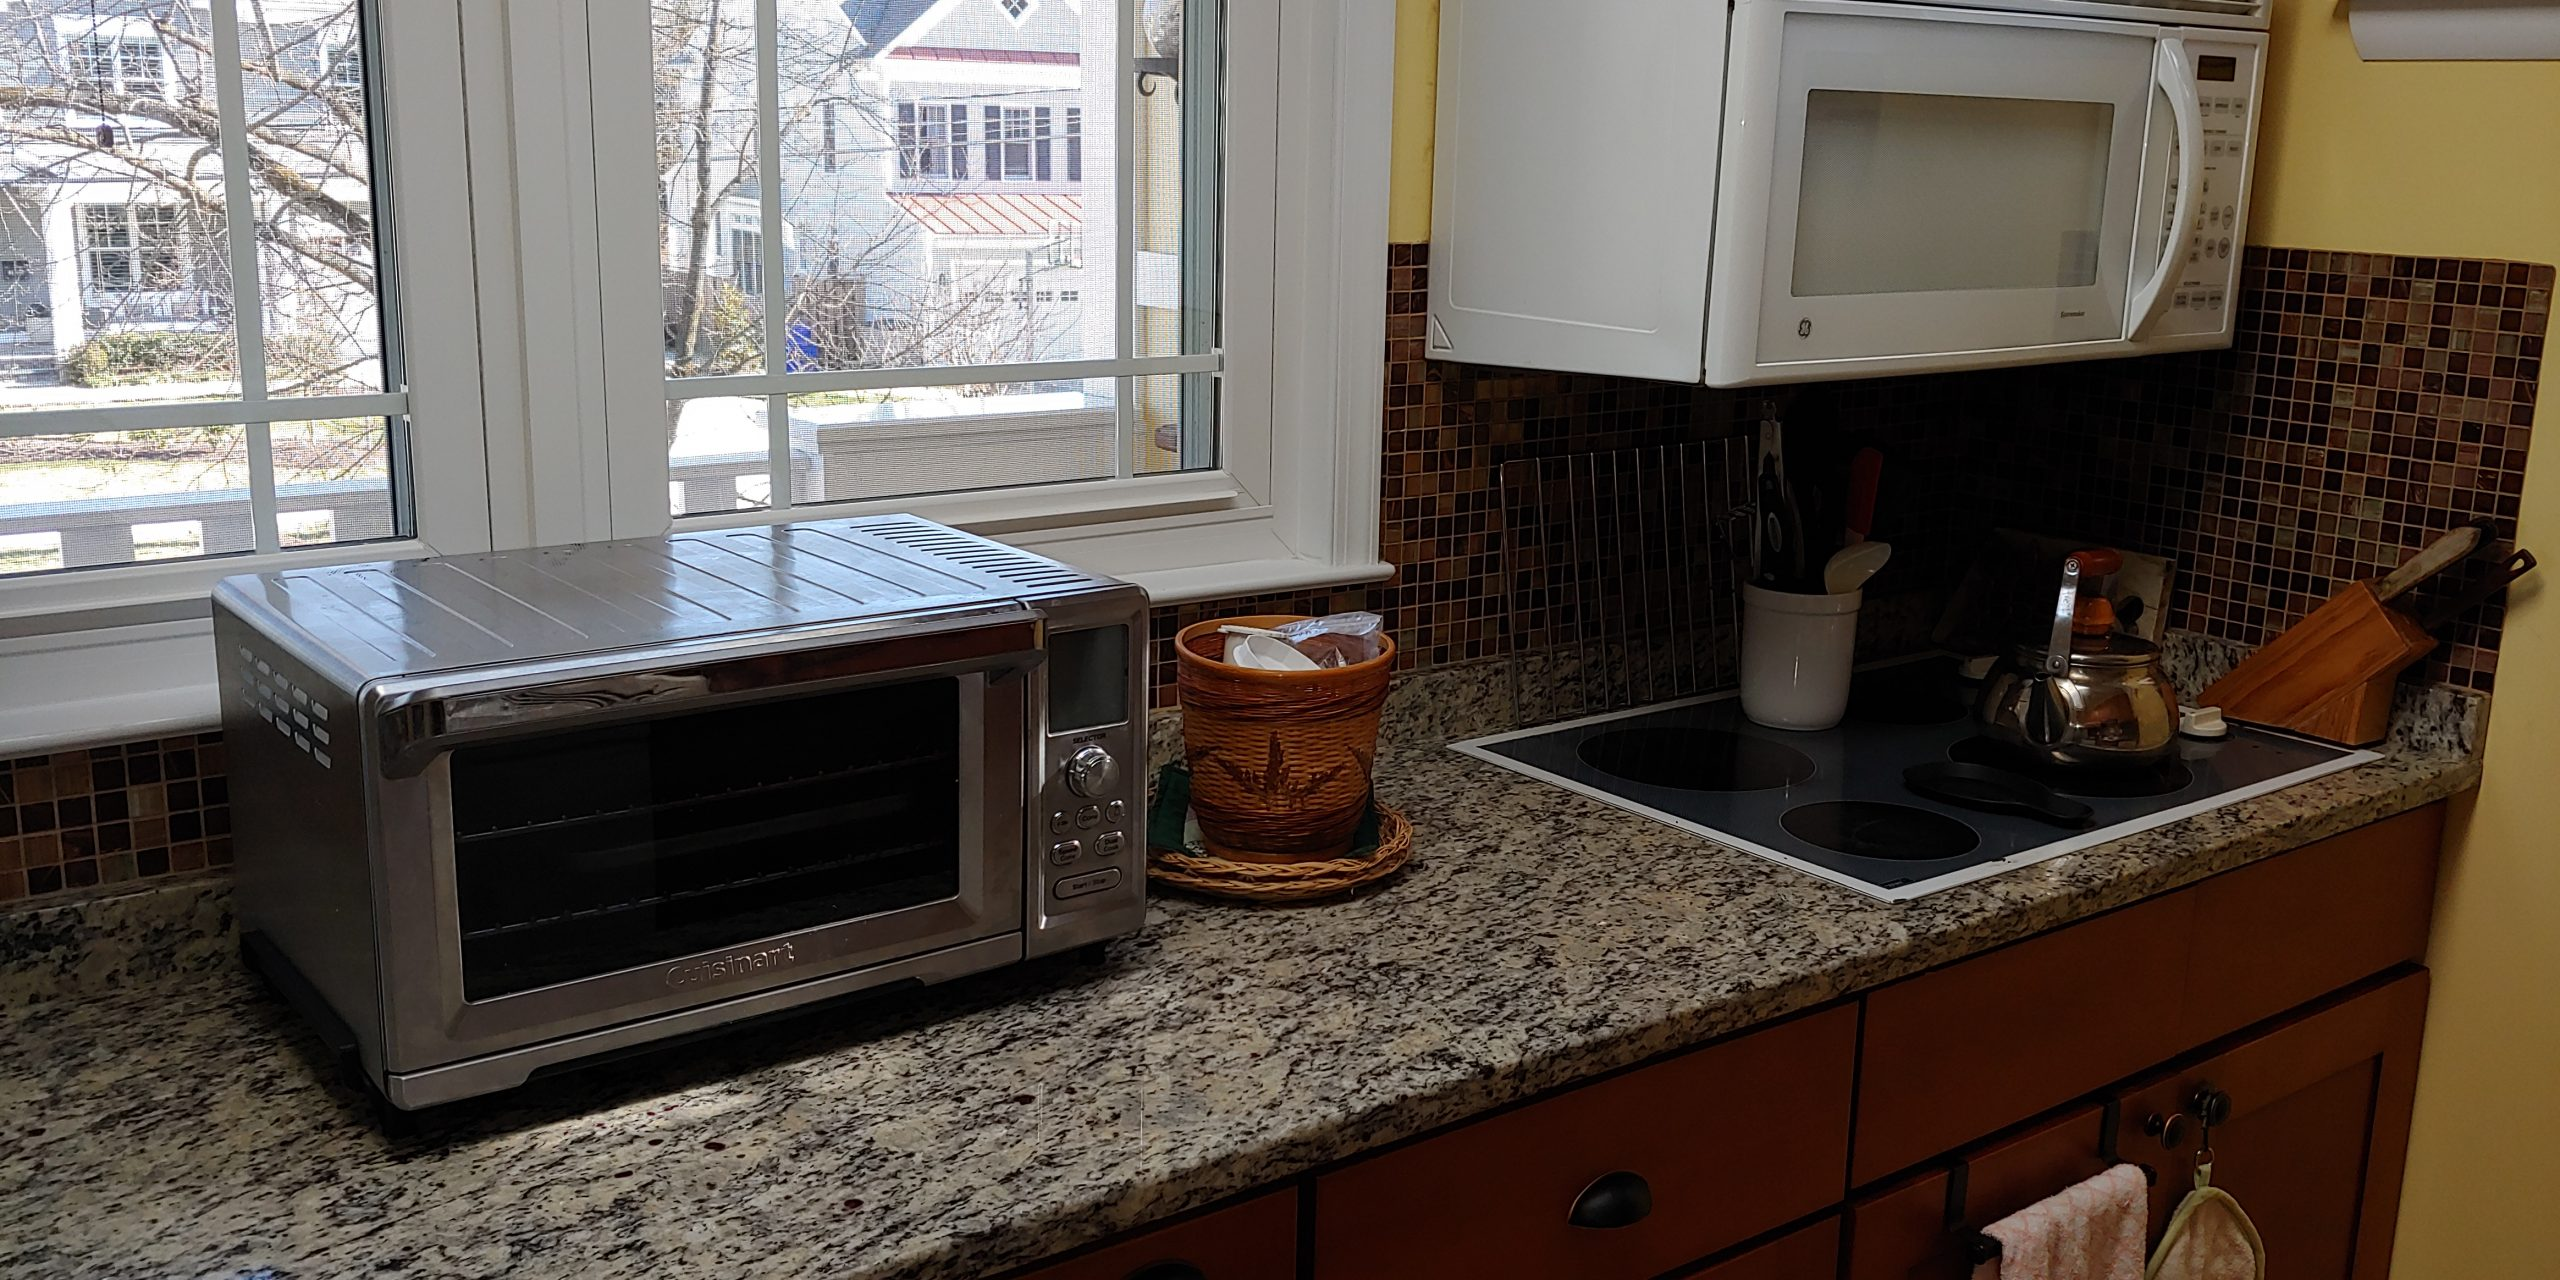 Convection oven, microwave, cooktop